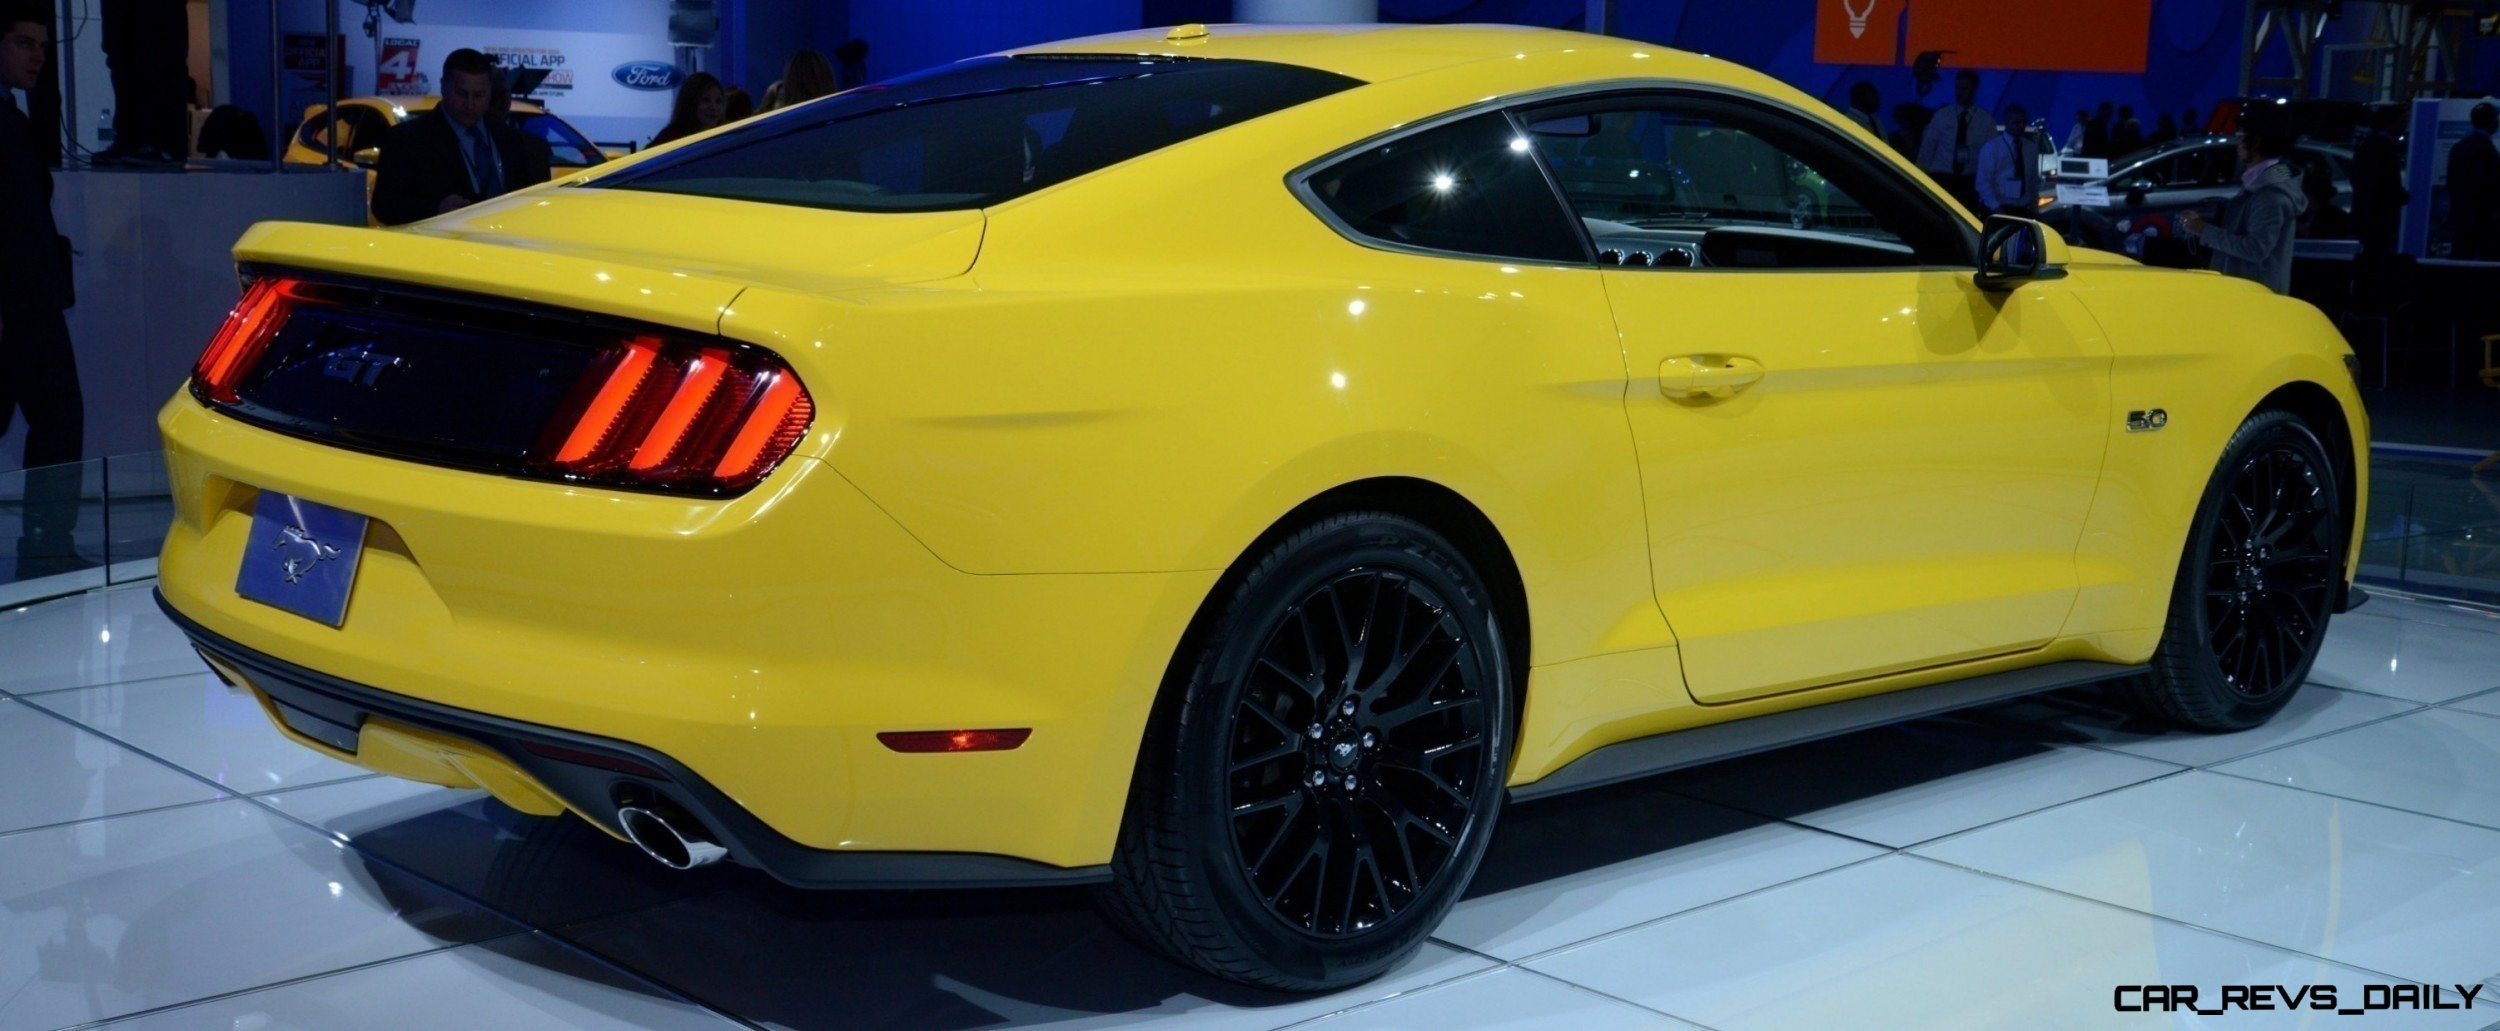 2015 Ford Mustang GT -- Mean, Lean and Ready To Brawl in Latest Real-Life Photos -- Yellow GT 16